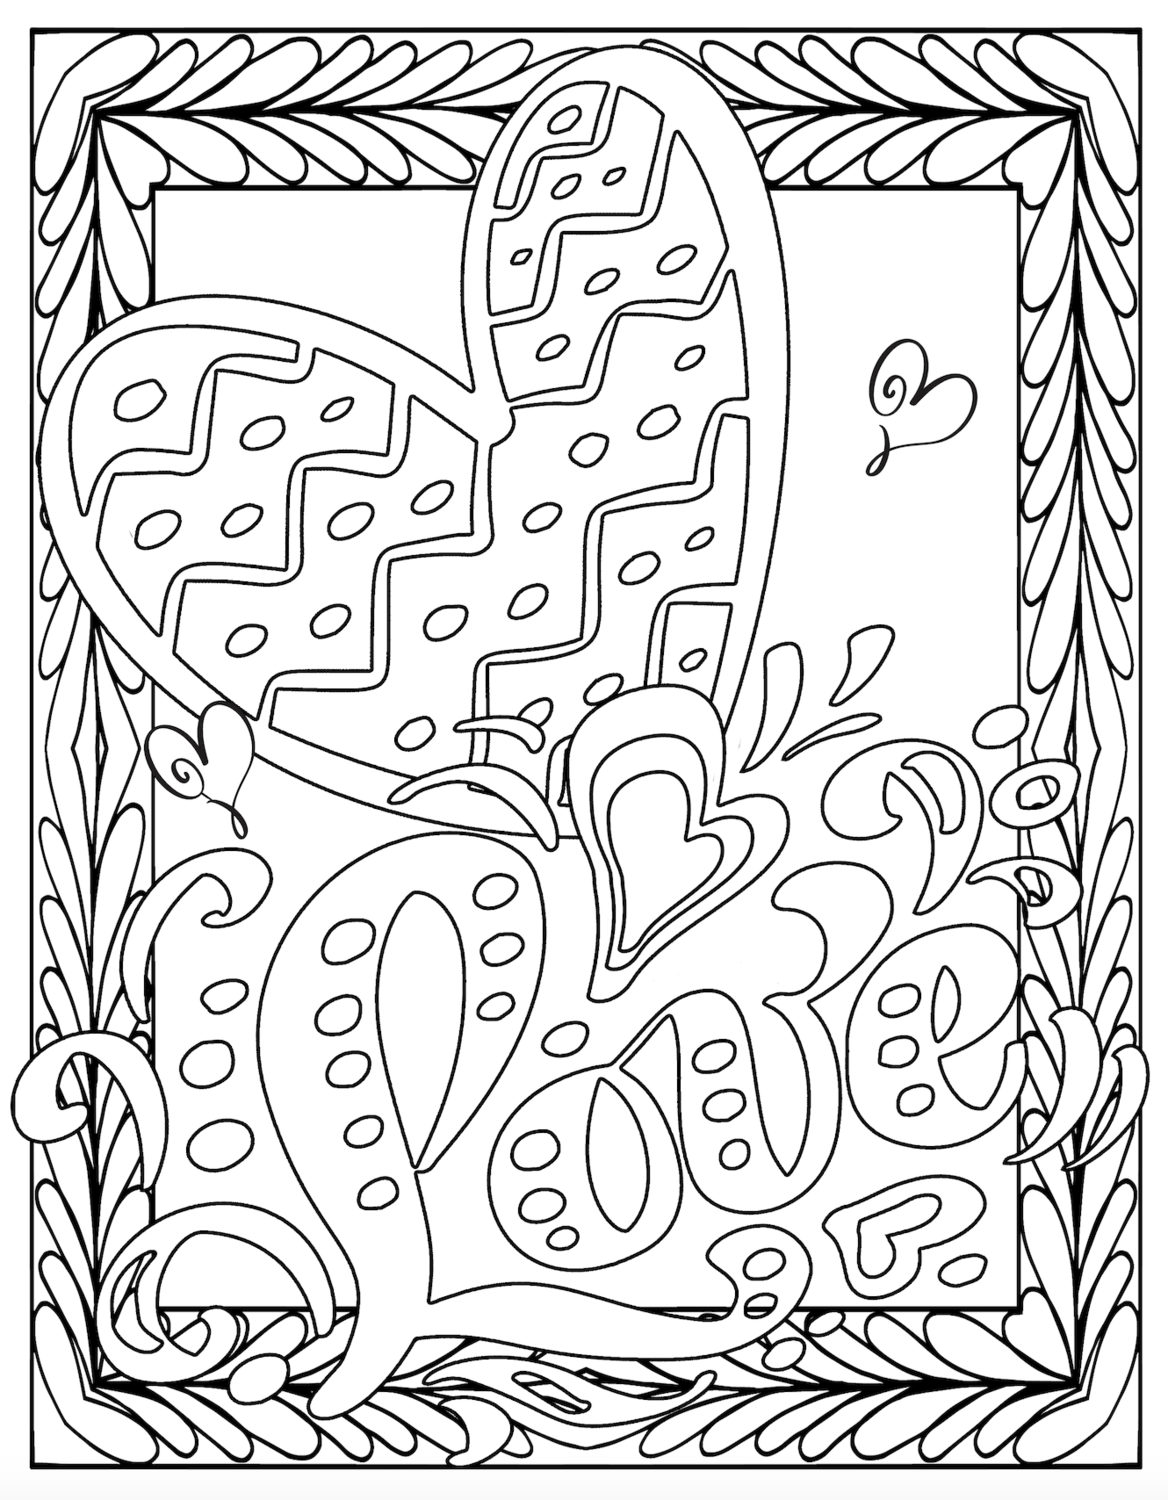 valentine printable coloring pages valentine coloring pages best coloring pages for kids coloring pages valentine printable